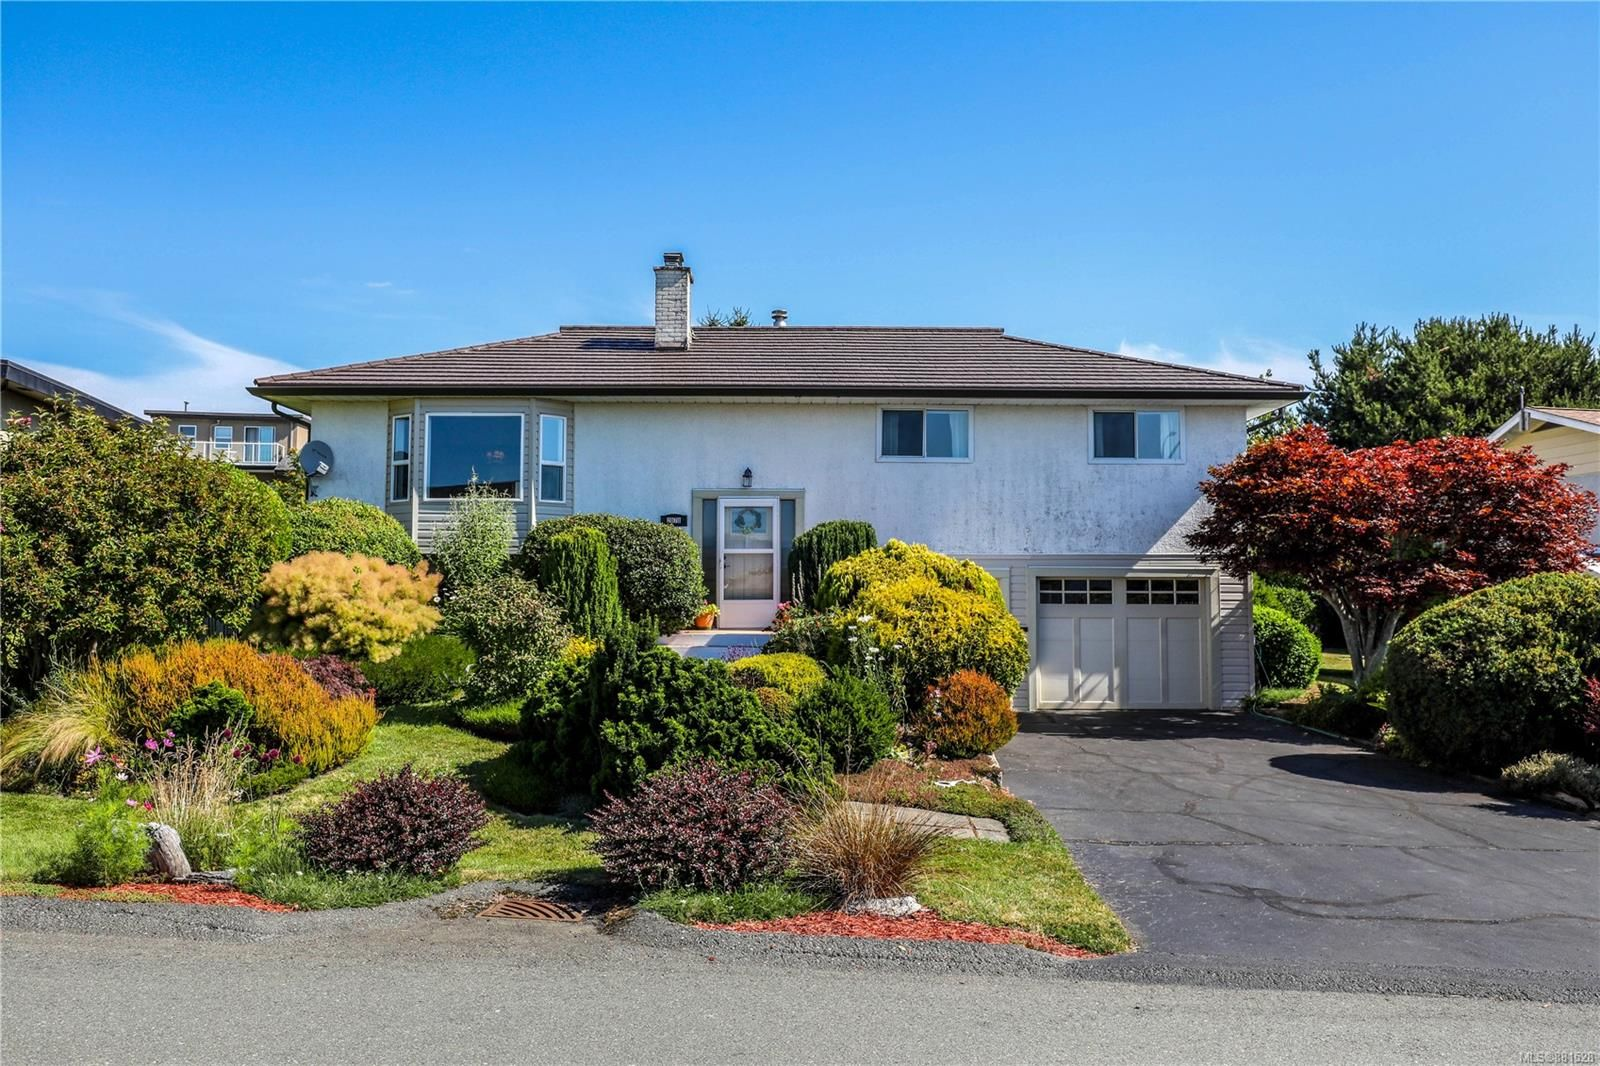 Main Photo: 2070 Beaton Ave in : CV Comox (Town of) House for sale (Comox Valley)  : MLS®# 881528